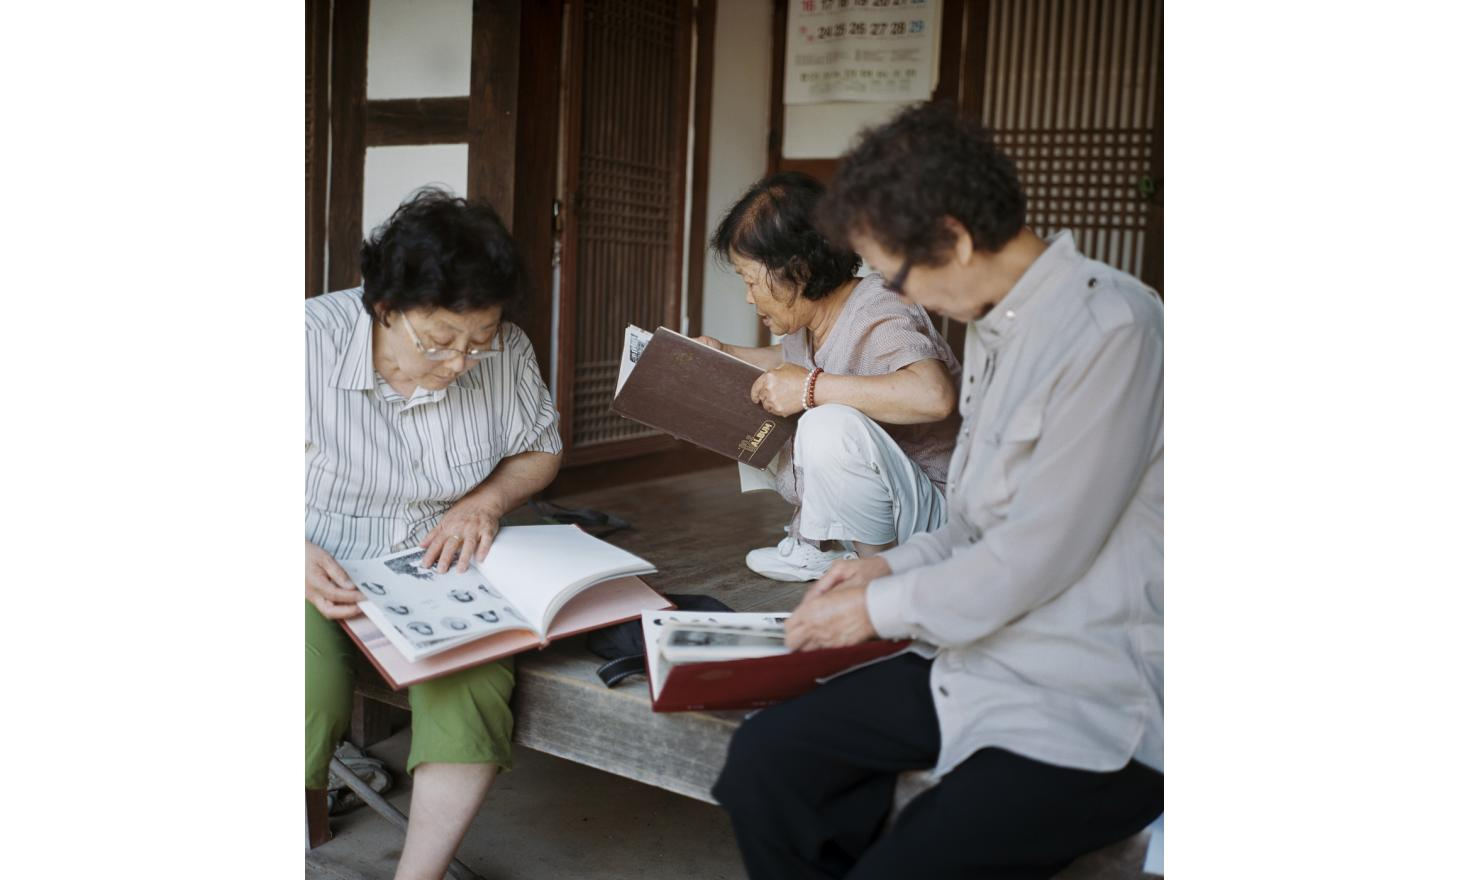 Around Geoncheon 24th of June 2013. Mrs Park Sook Ha and Mr Cho Sang-Hwan wanted a boy. When her fourth daughter is born, they took the decision to let her with Mrs Song, the village mid wife. They so wanted to forget their act they don't even remember